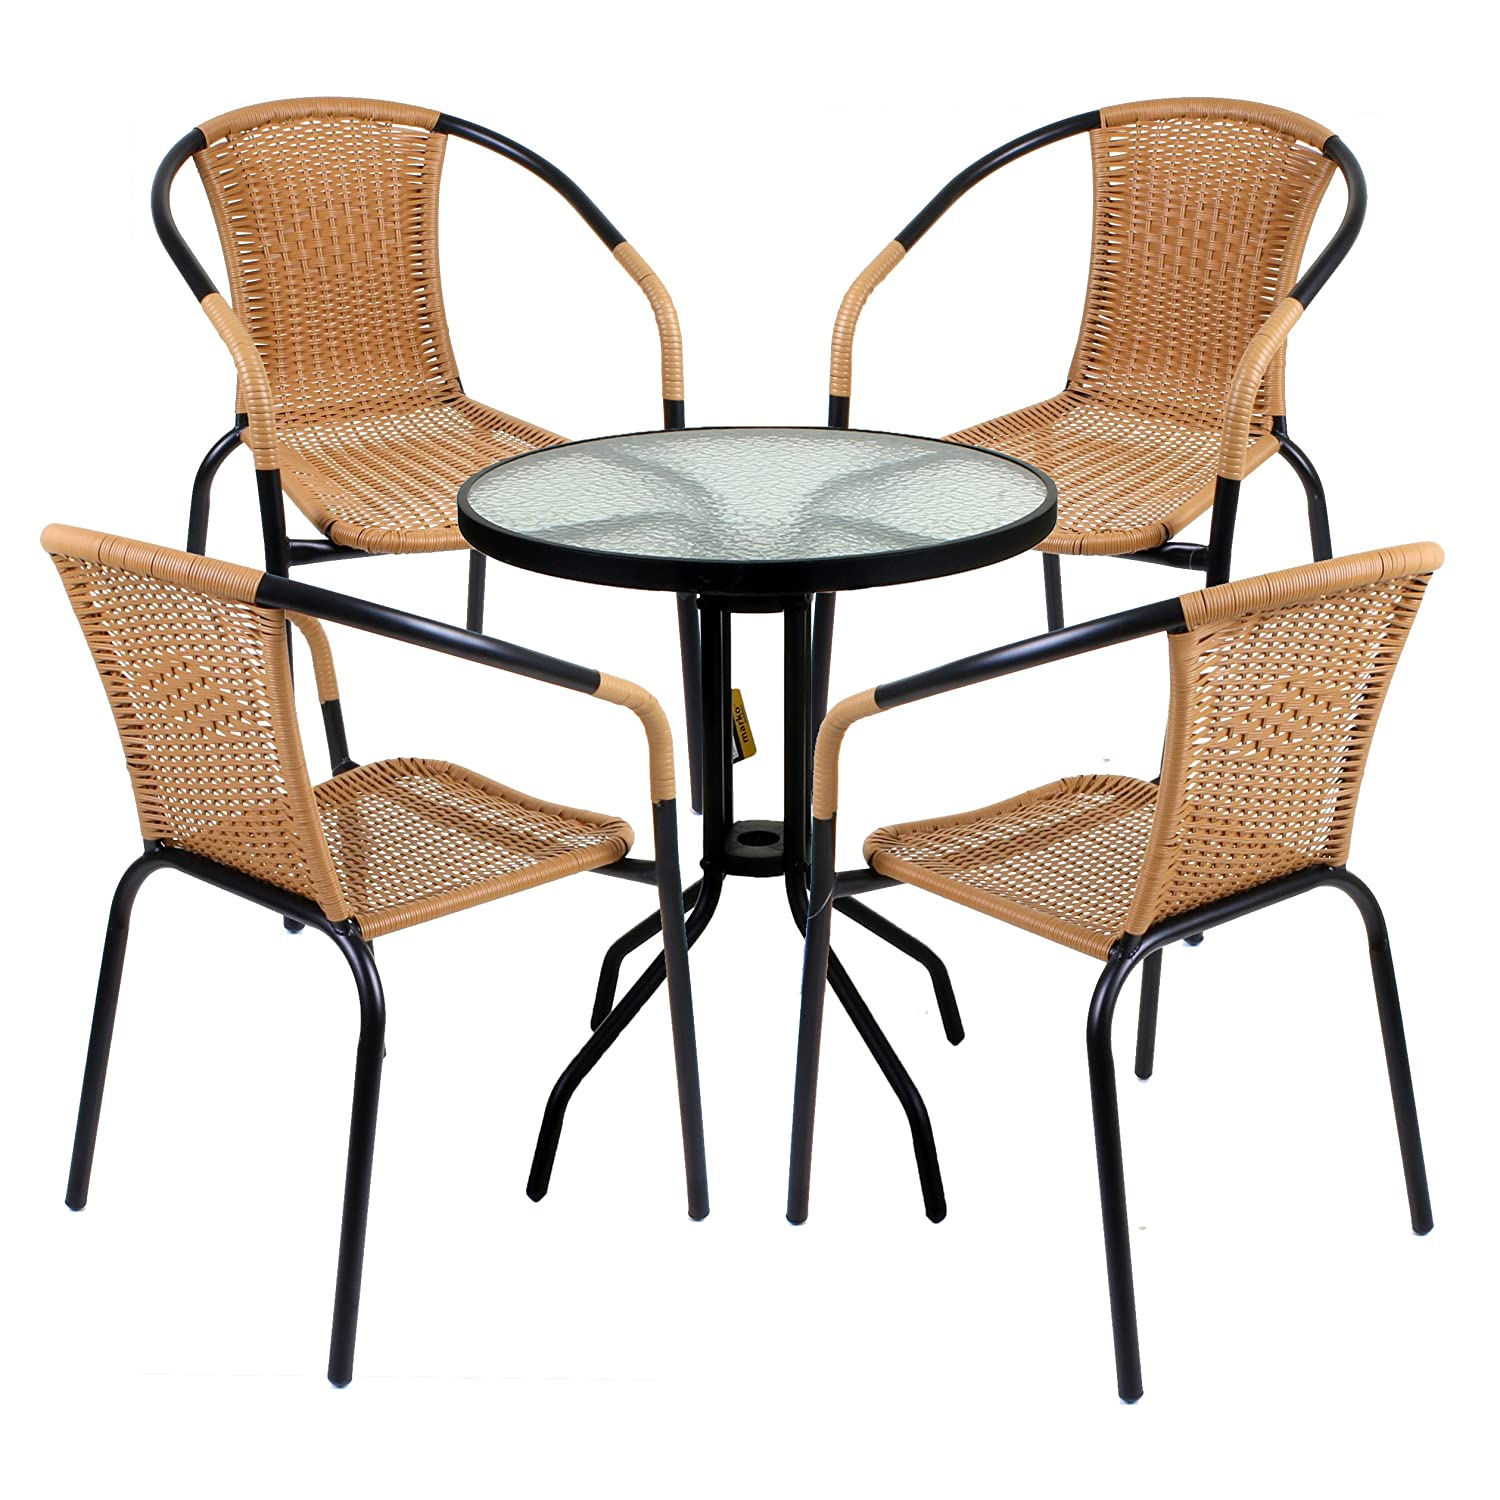 Garden furniture sets garden outdoors for At home patio furniture